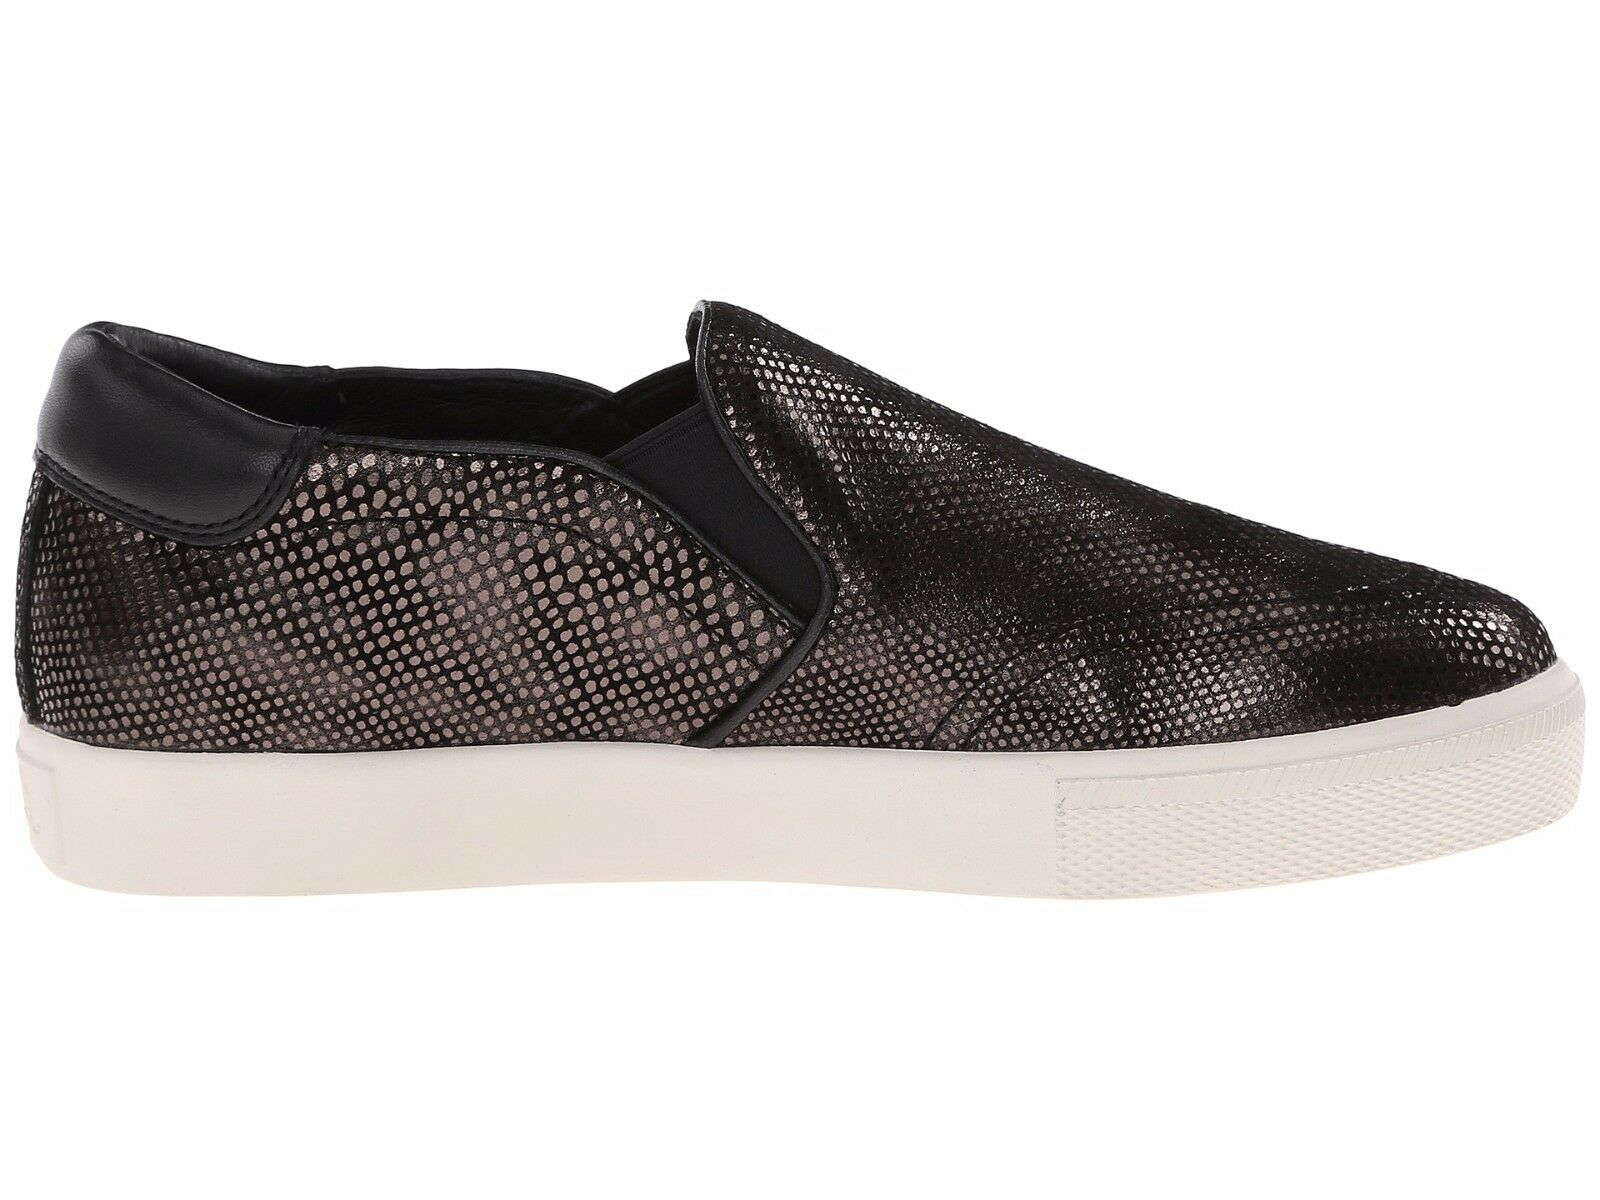 New  160 Ash Impuls Slip-On Trainers Turnschuhe EU 40  US 10